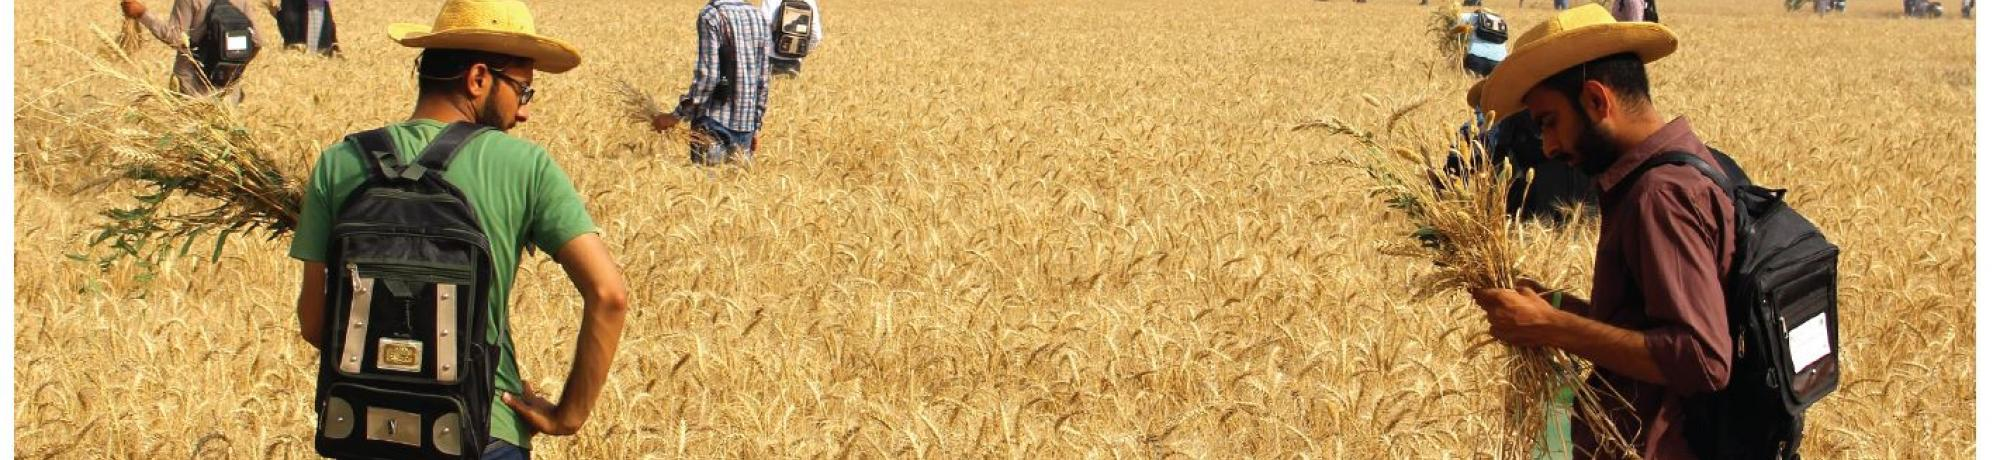 men standing in wheat